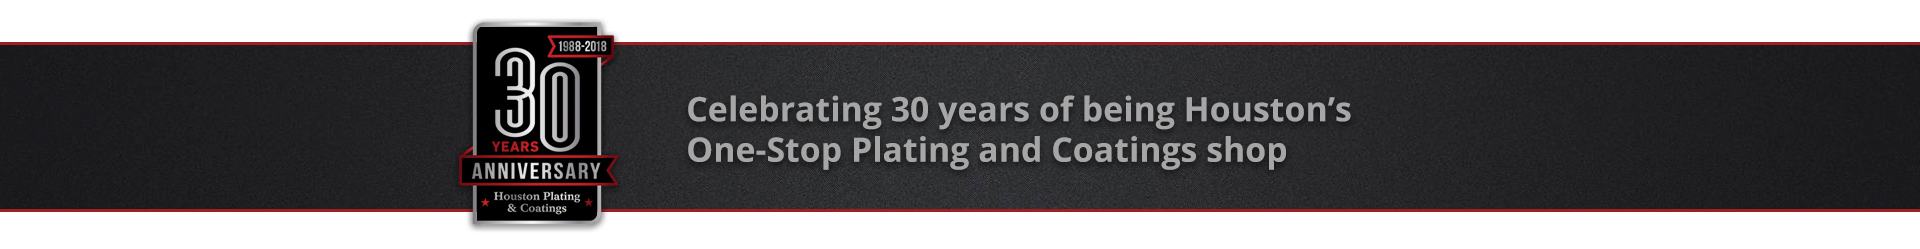 SBN/QPQ | Houston Plating & Coatings